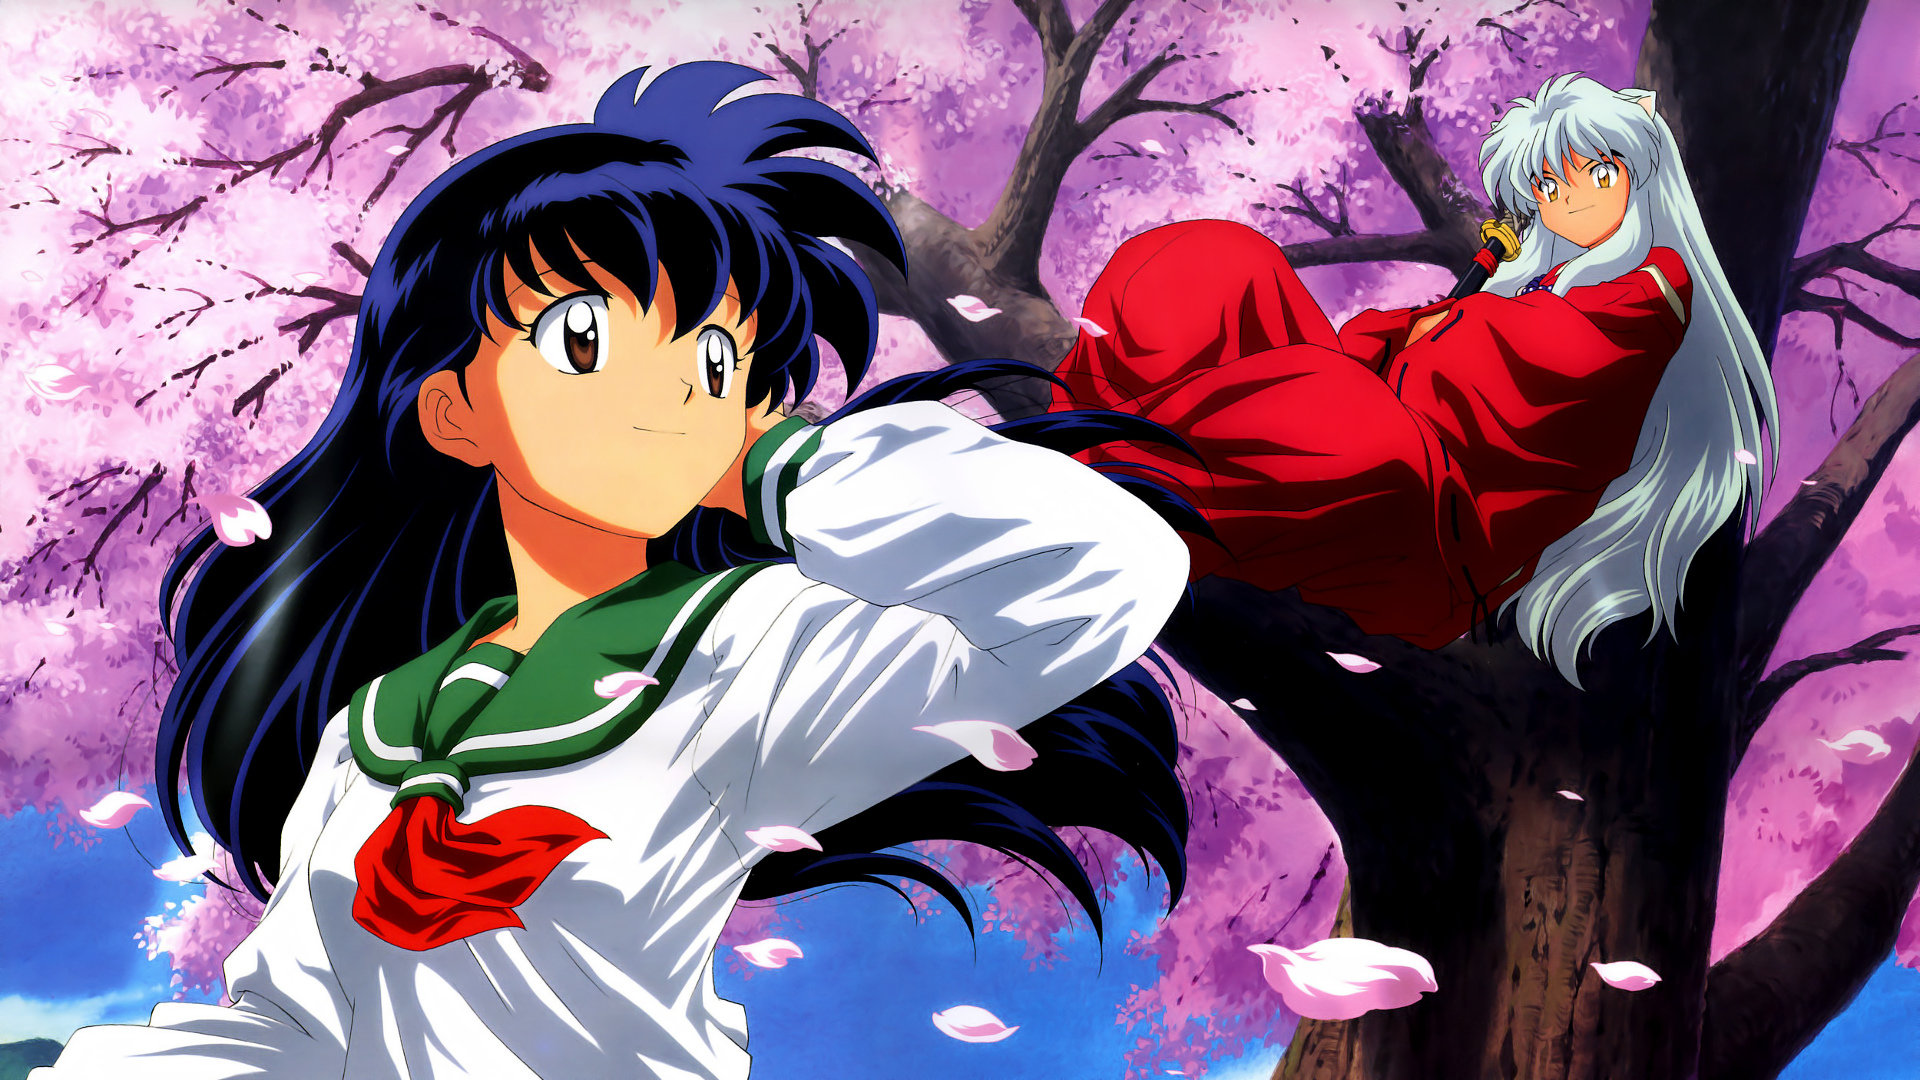 Download full hd InuYasha computer wallpaper ID:45903 for free